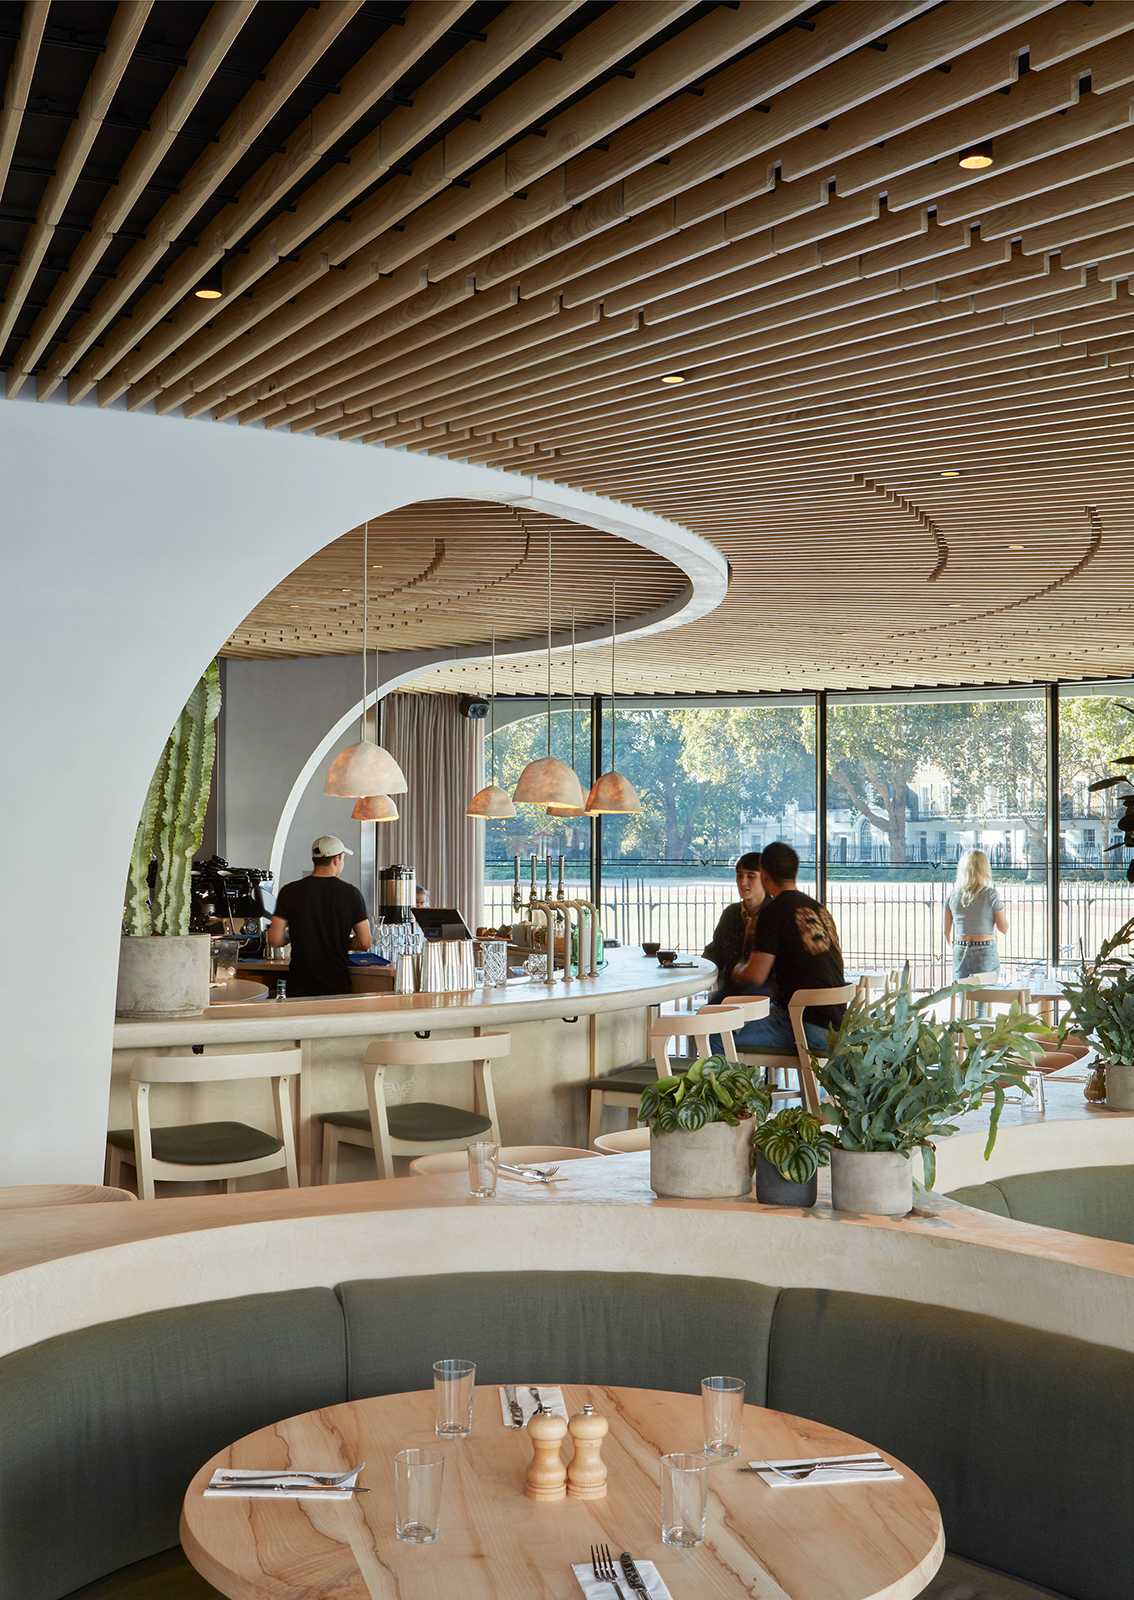 The curving roof inside Cadogan Cafe on King's Road